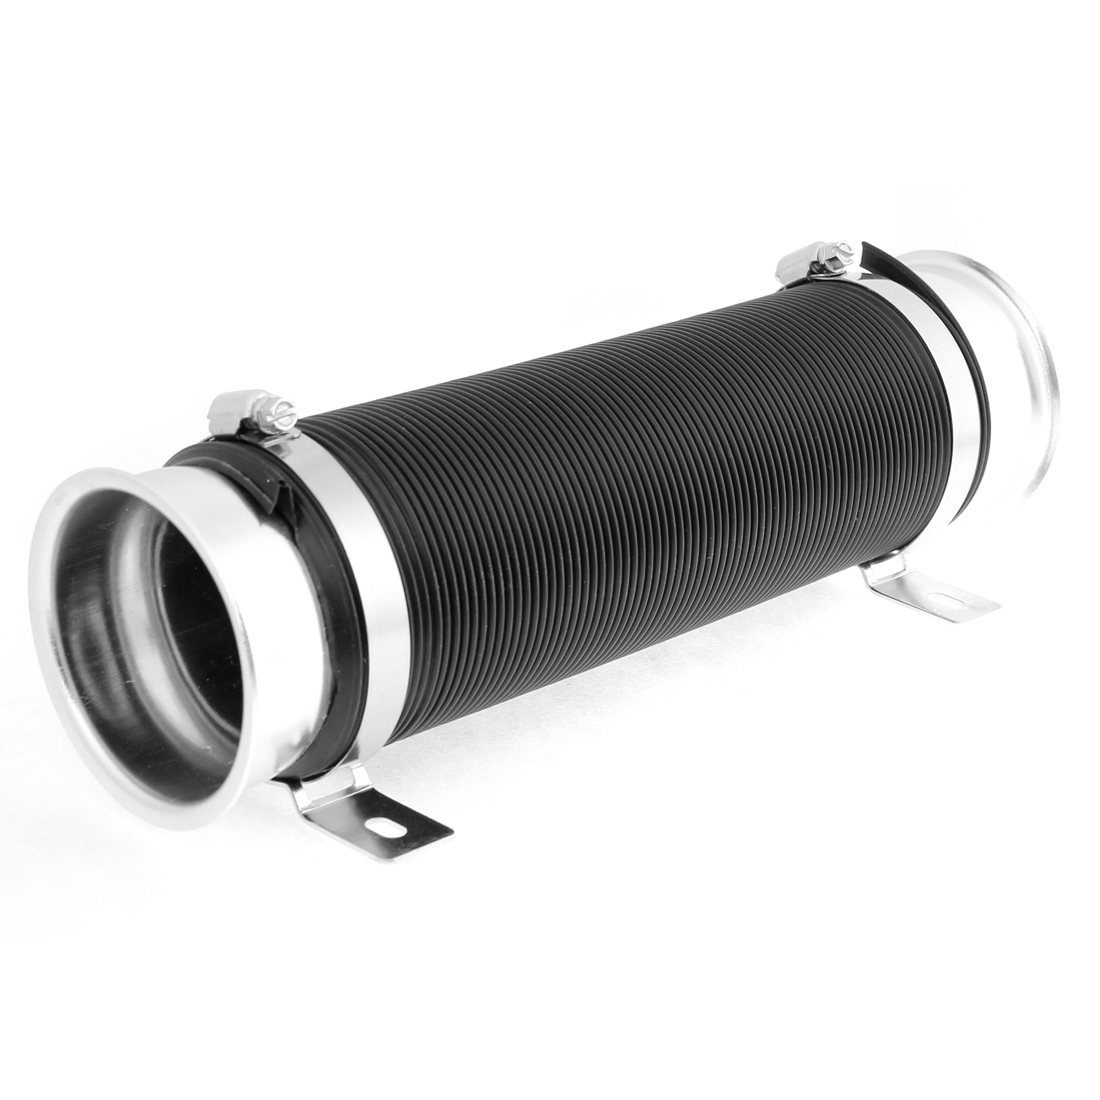 9.5cm Dia Cold Flexible Expandable Air Intake Pipe Tubing...